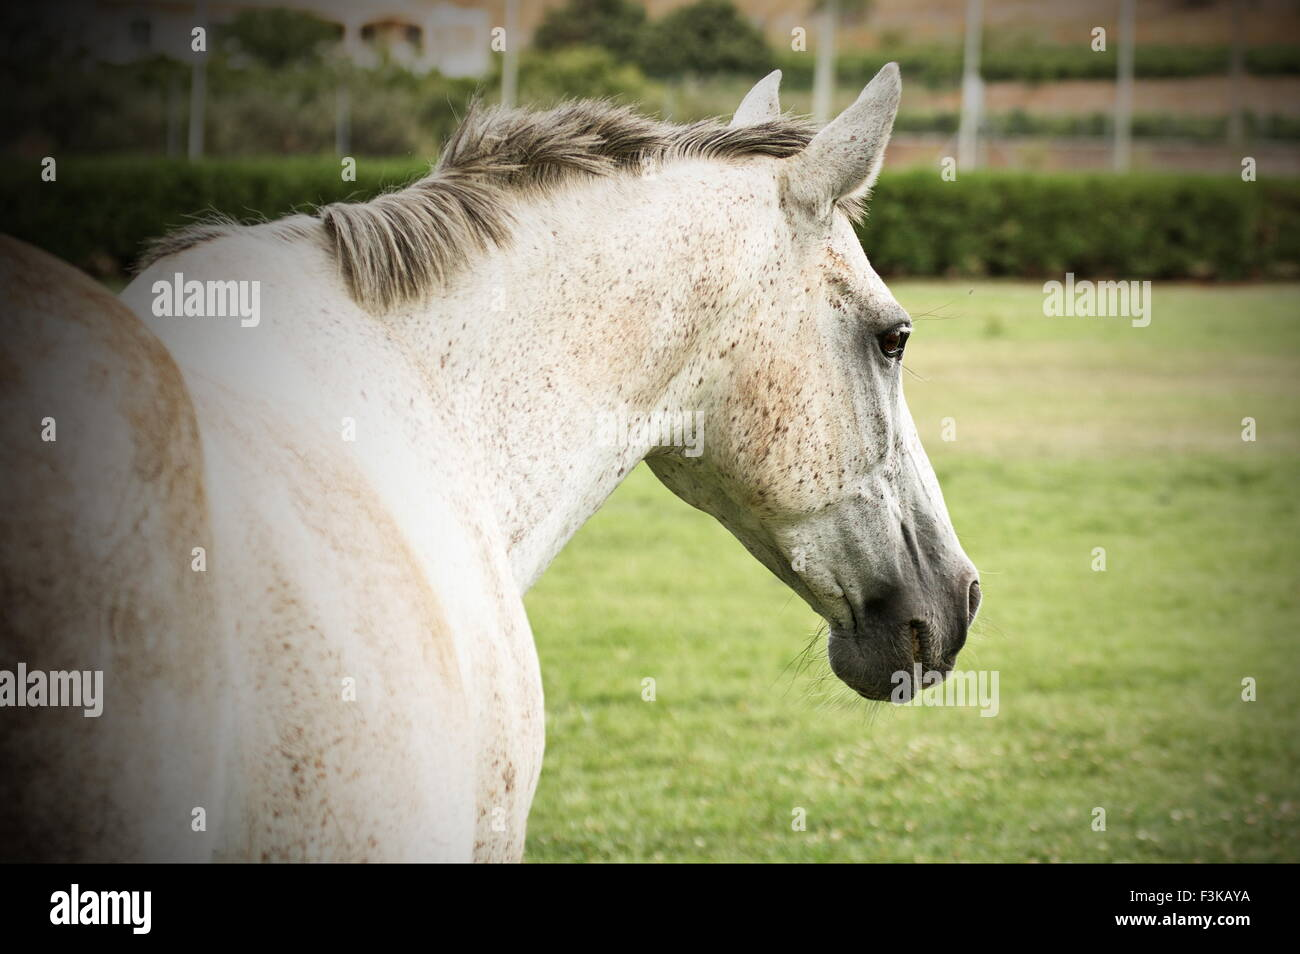 White mare walking away in an open green meadow - Stock Image